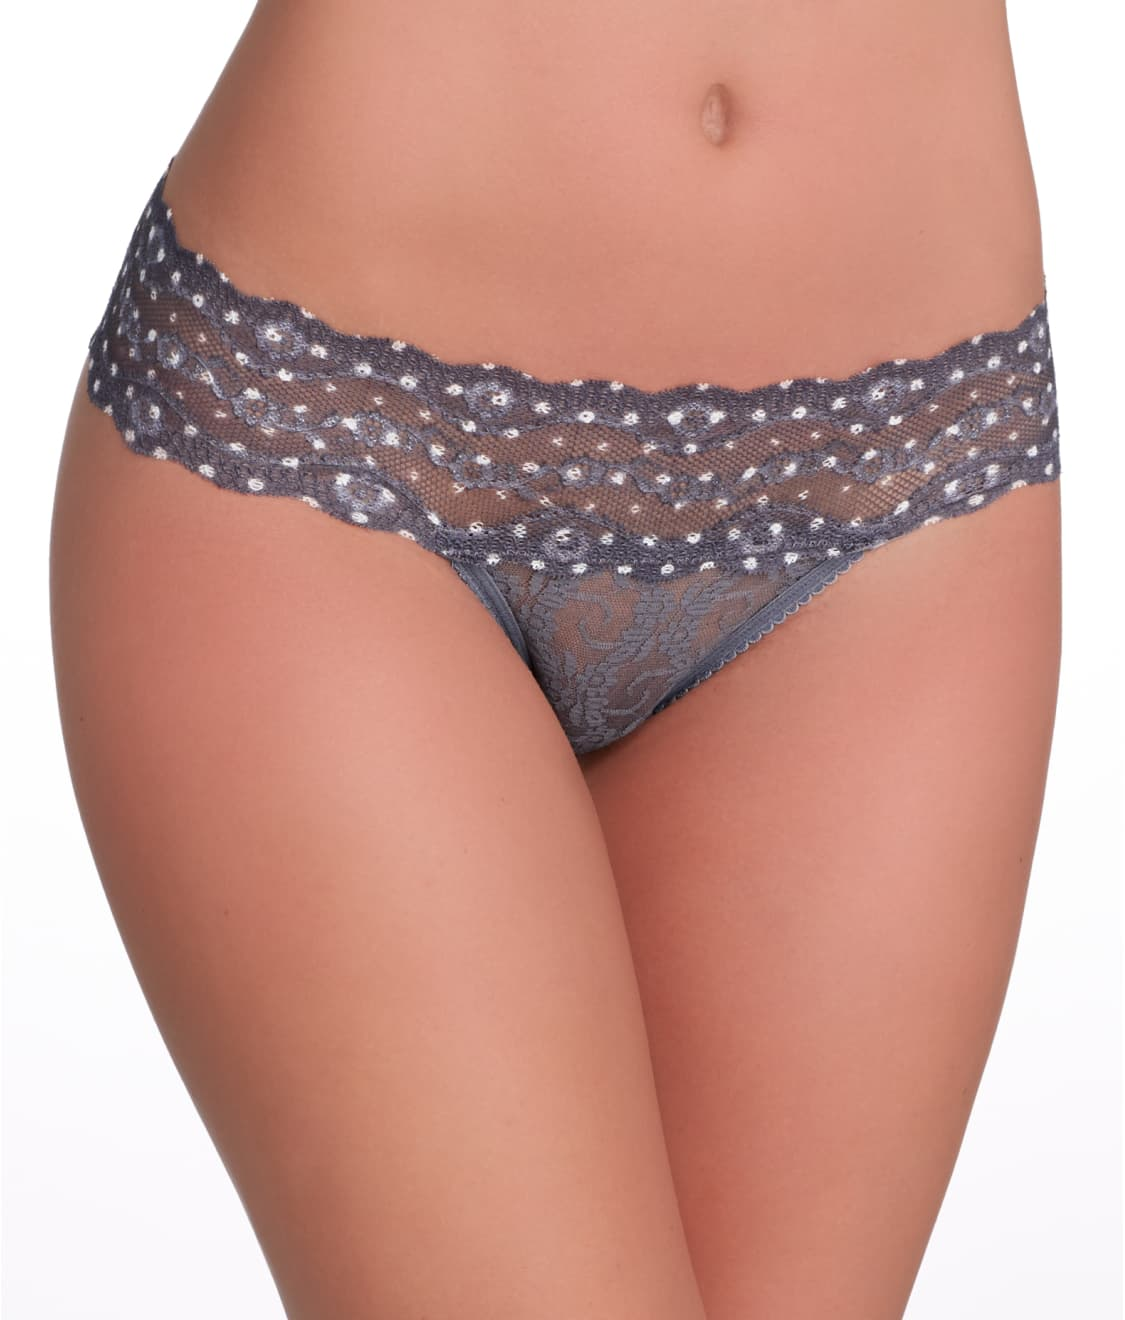 63c9c3ccebc b.tempt'd by Wacoal Lace Kiss Thong   Bare Necessities (970182)